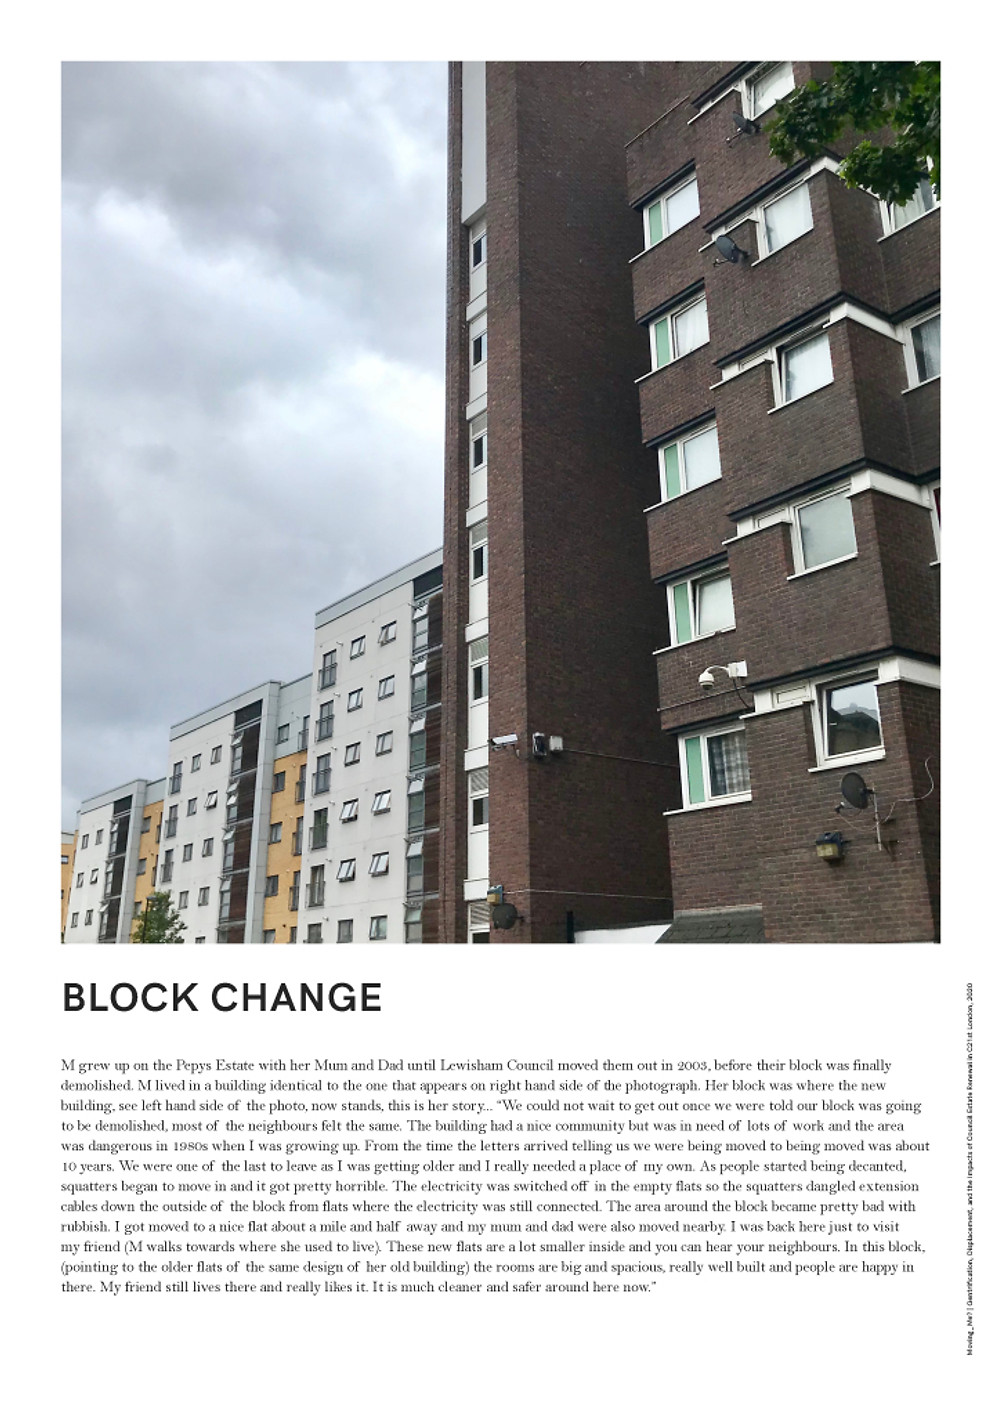 M grew up on the Pepys Estate with her Mum and Dad until Lewisham Council moved them out in 2003, before their block was finally demolished. M lived in a building identical to the one that appears on right hand side of the photograph. Her block was where the new building, see left hand side of the photo, now stands, this is her story...